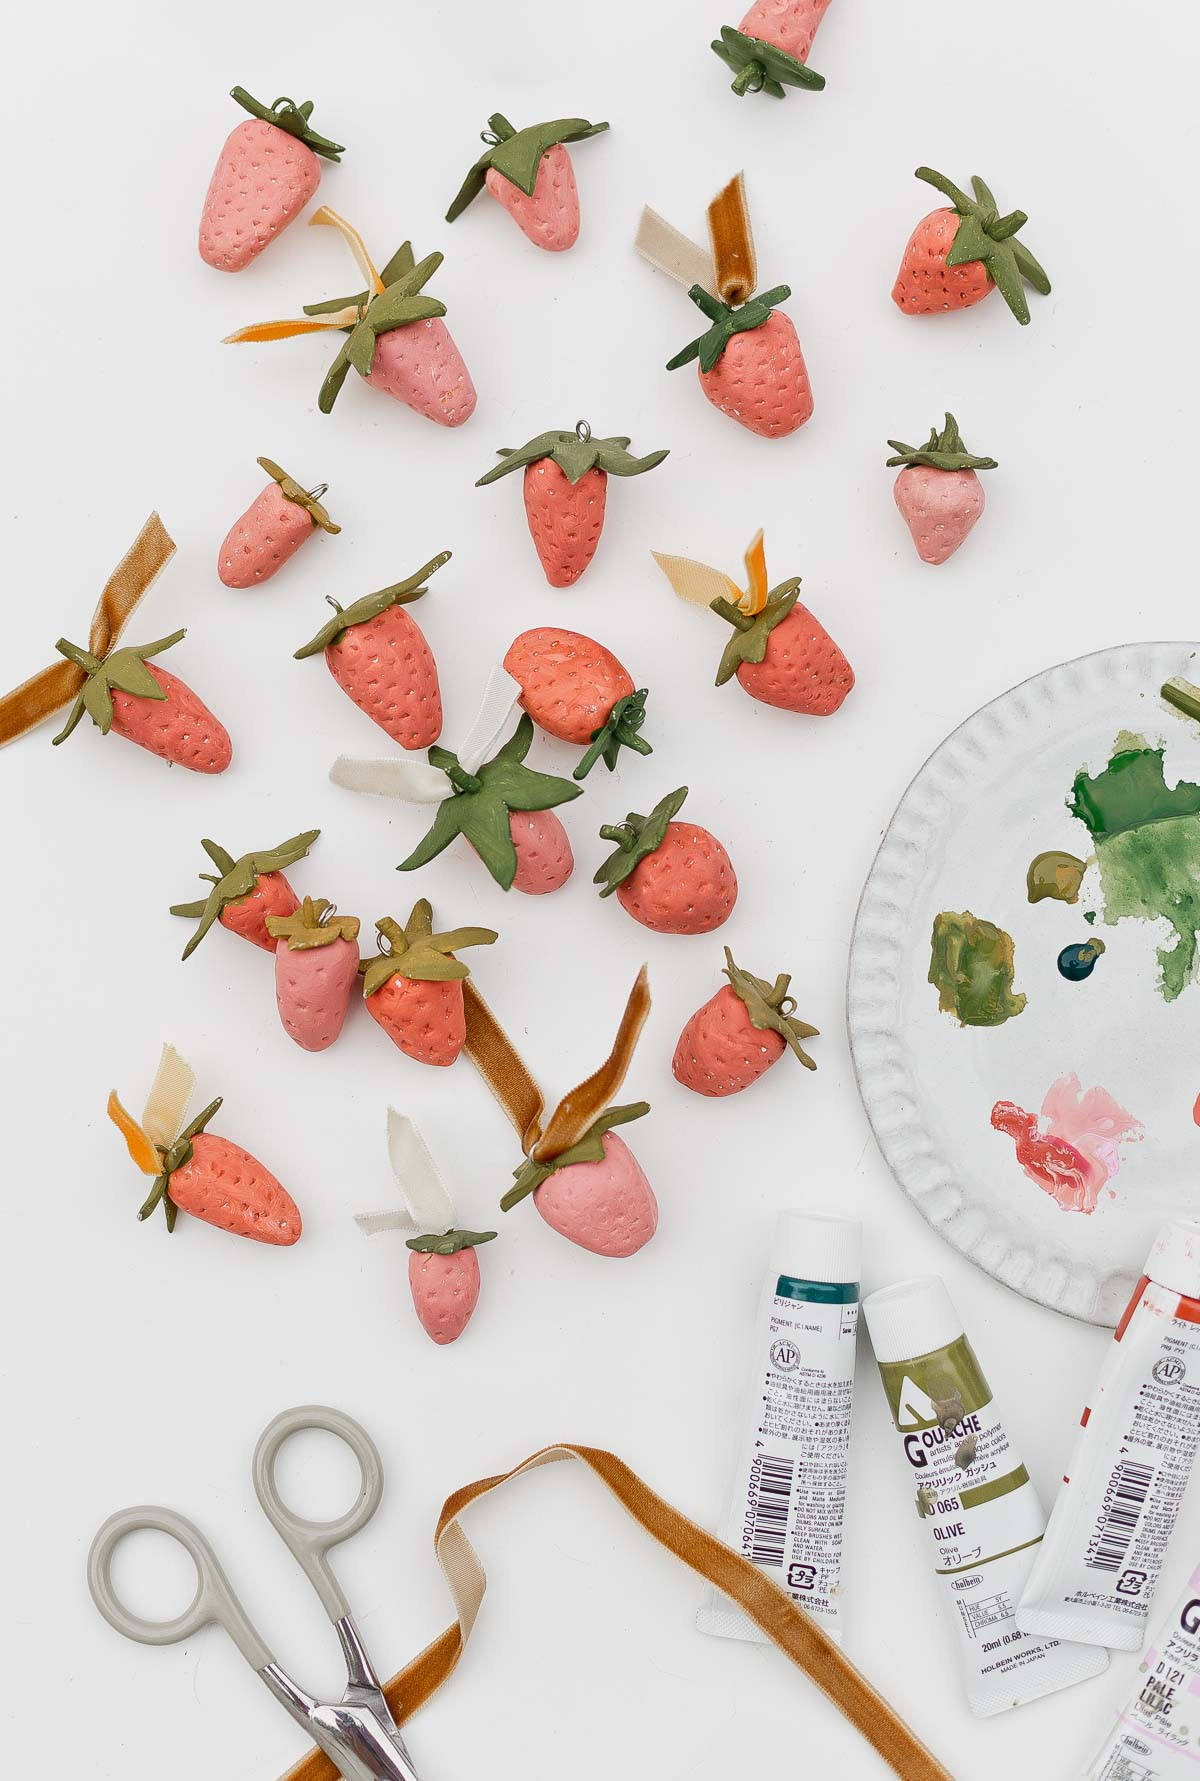 Clay strawberries with paint palette nearby.